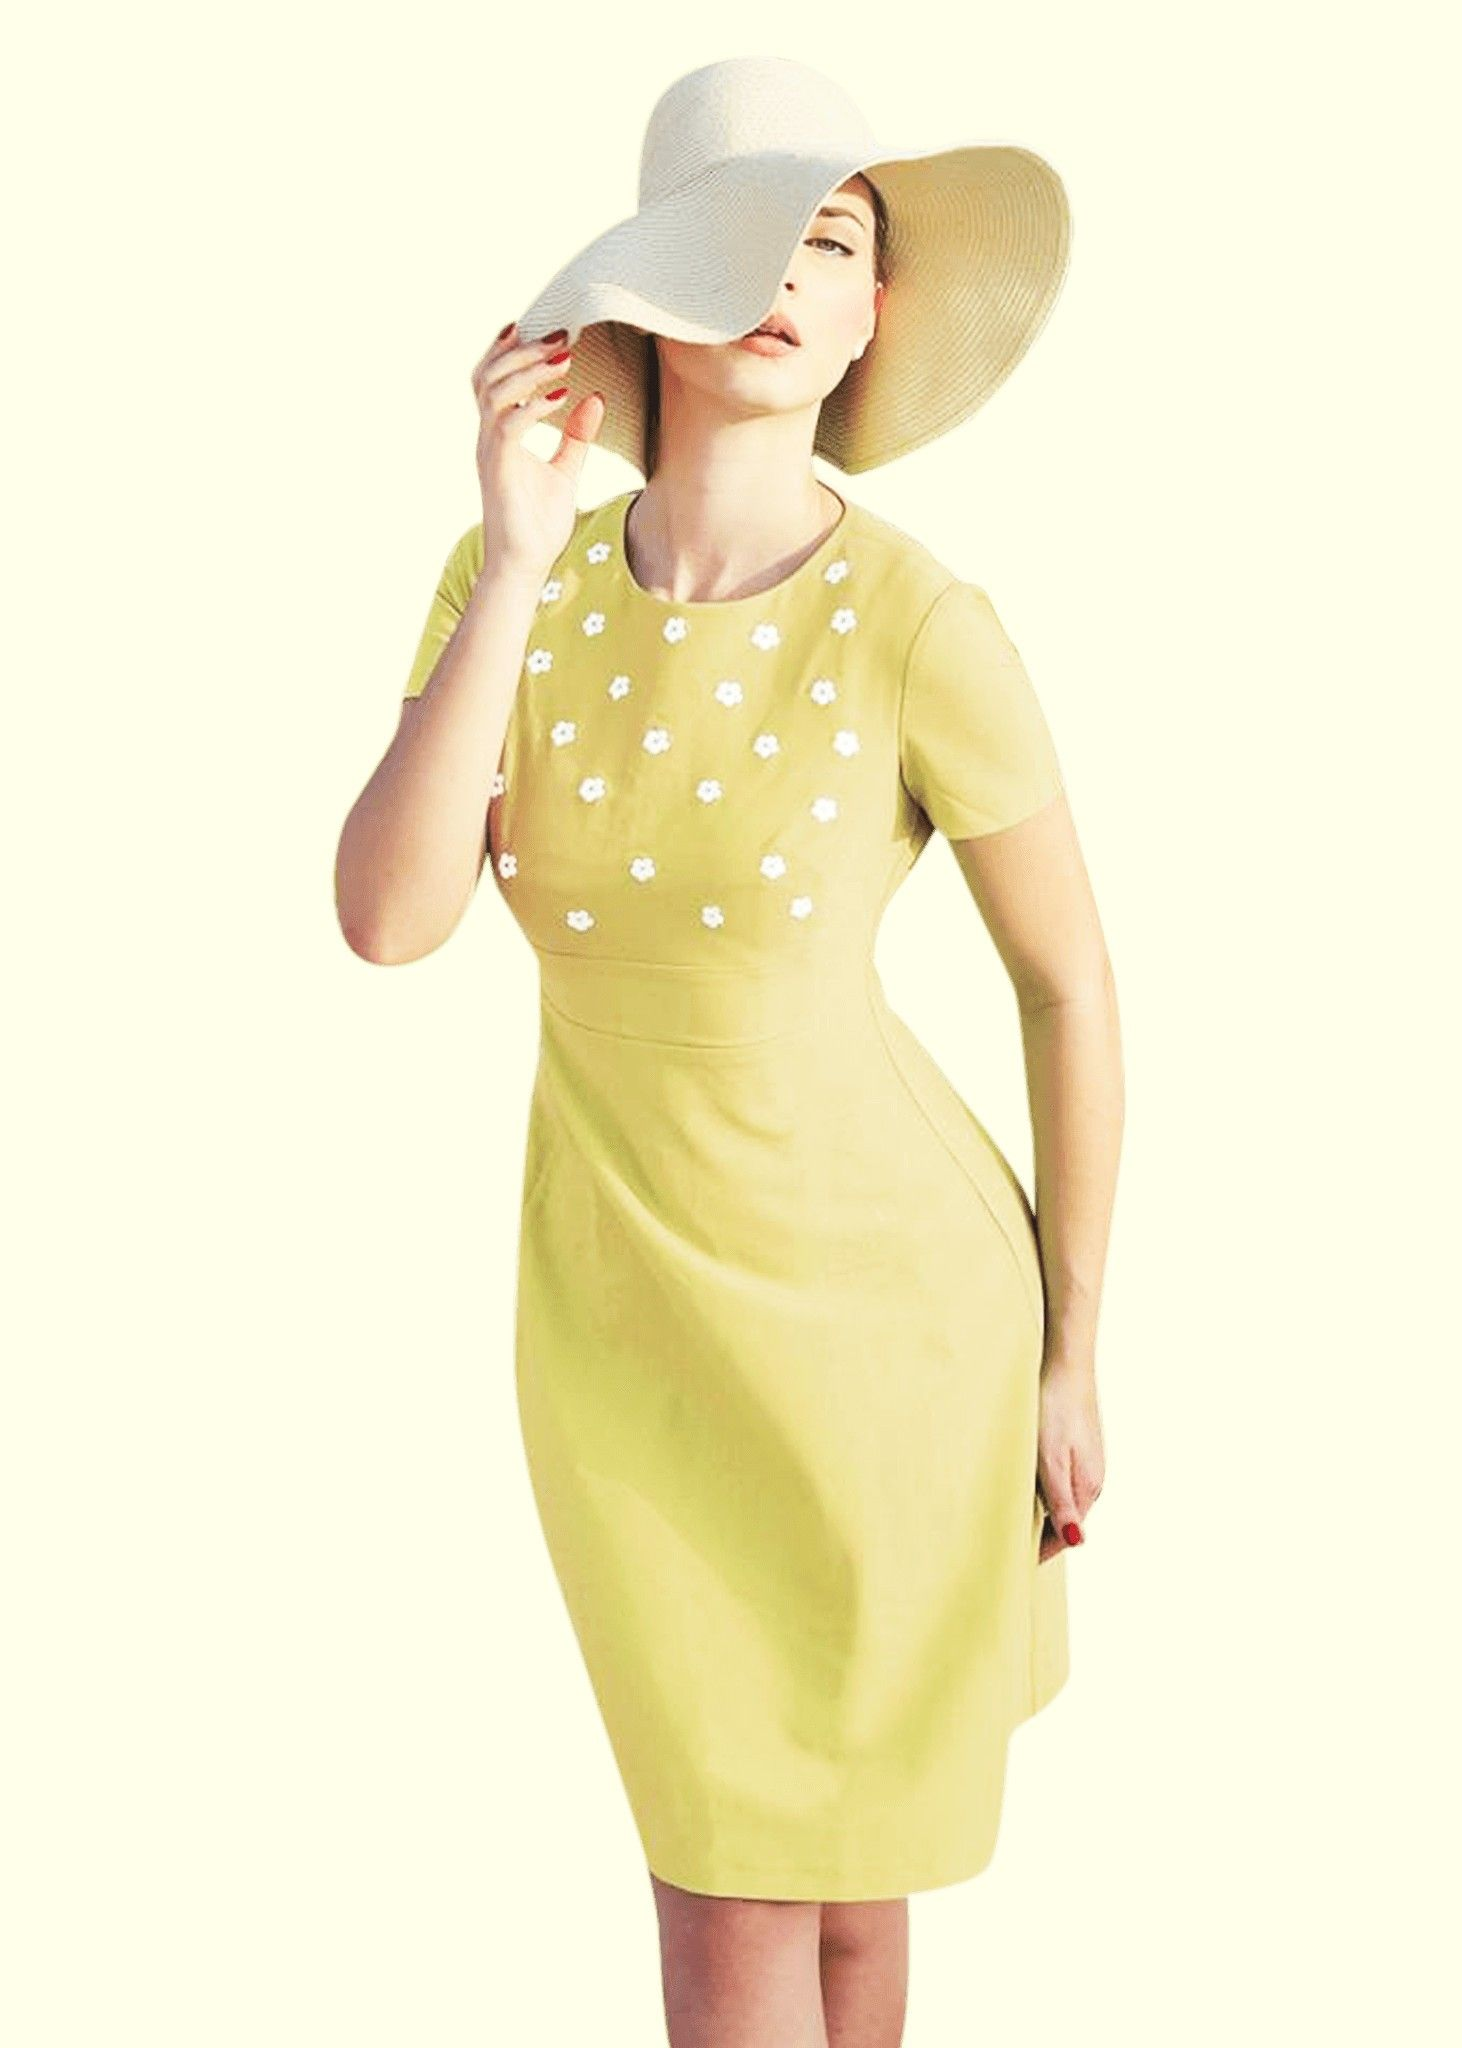 Dapper Peggy Style Gul I Lovely Daisy Fashion 60'er Kjole zHfR6qwnq